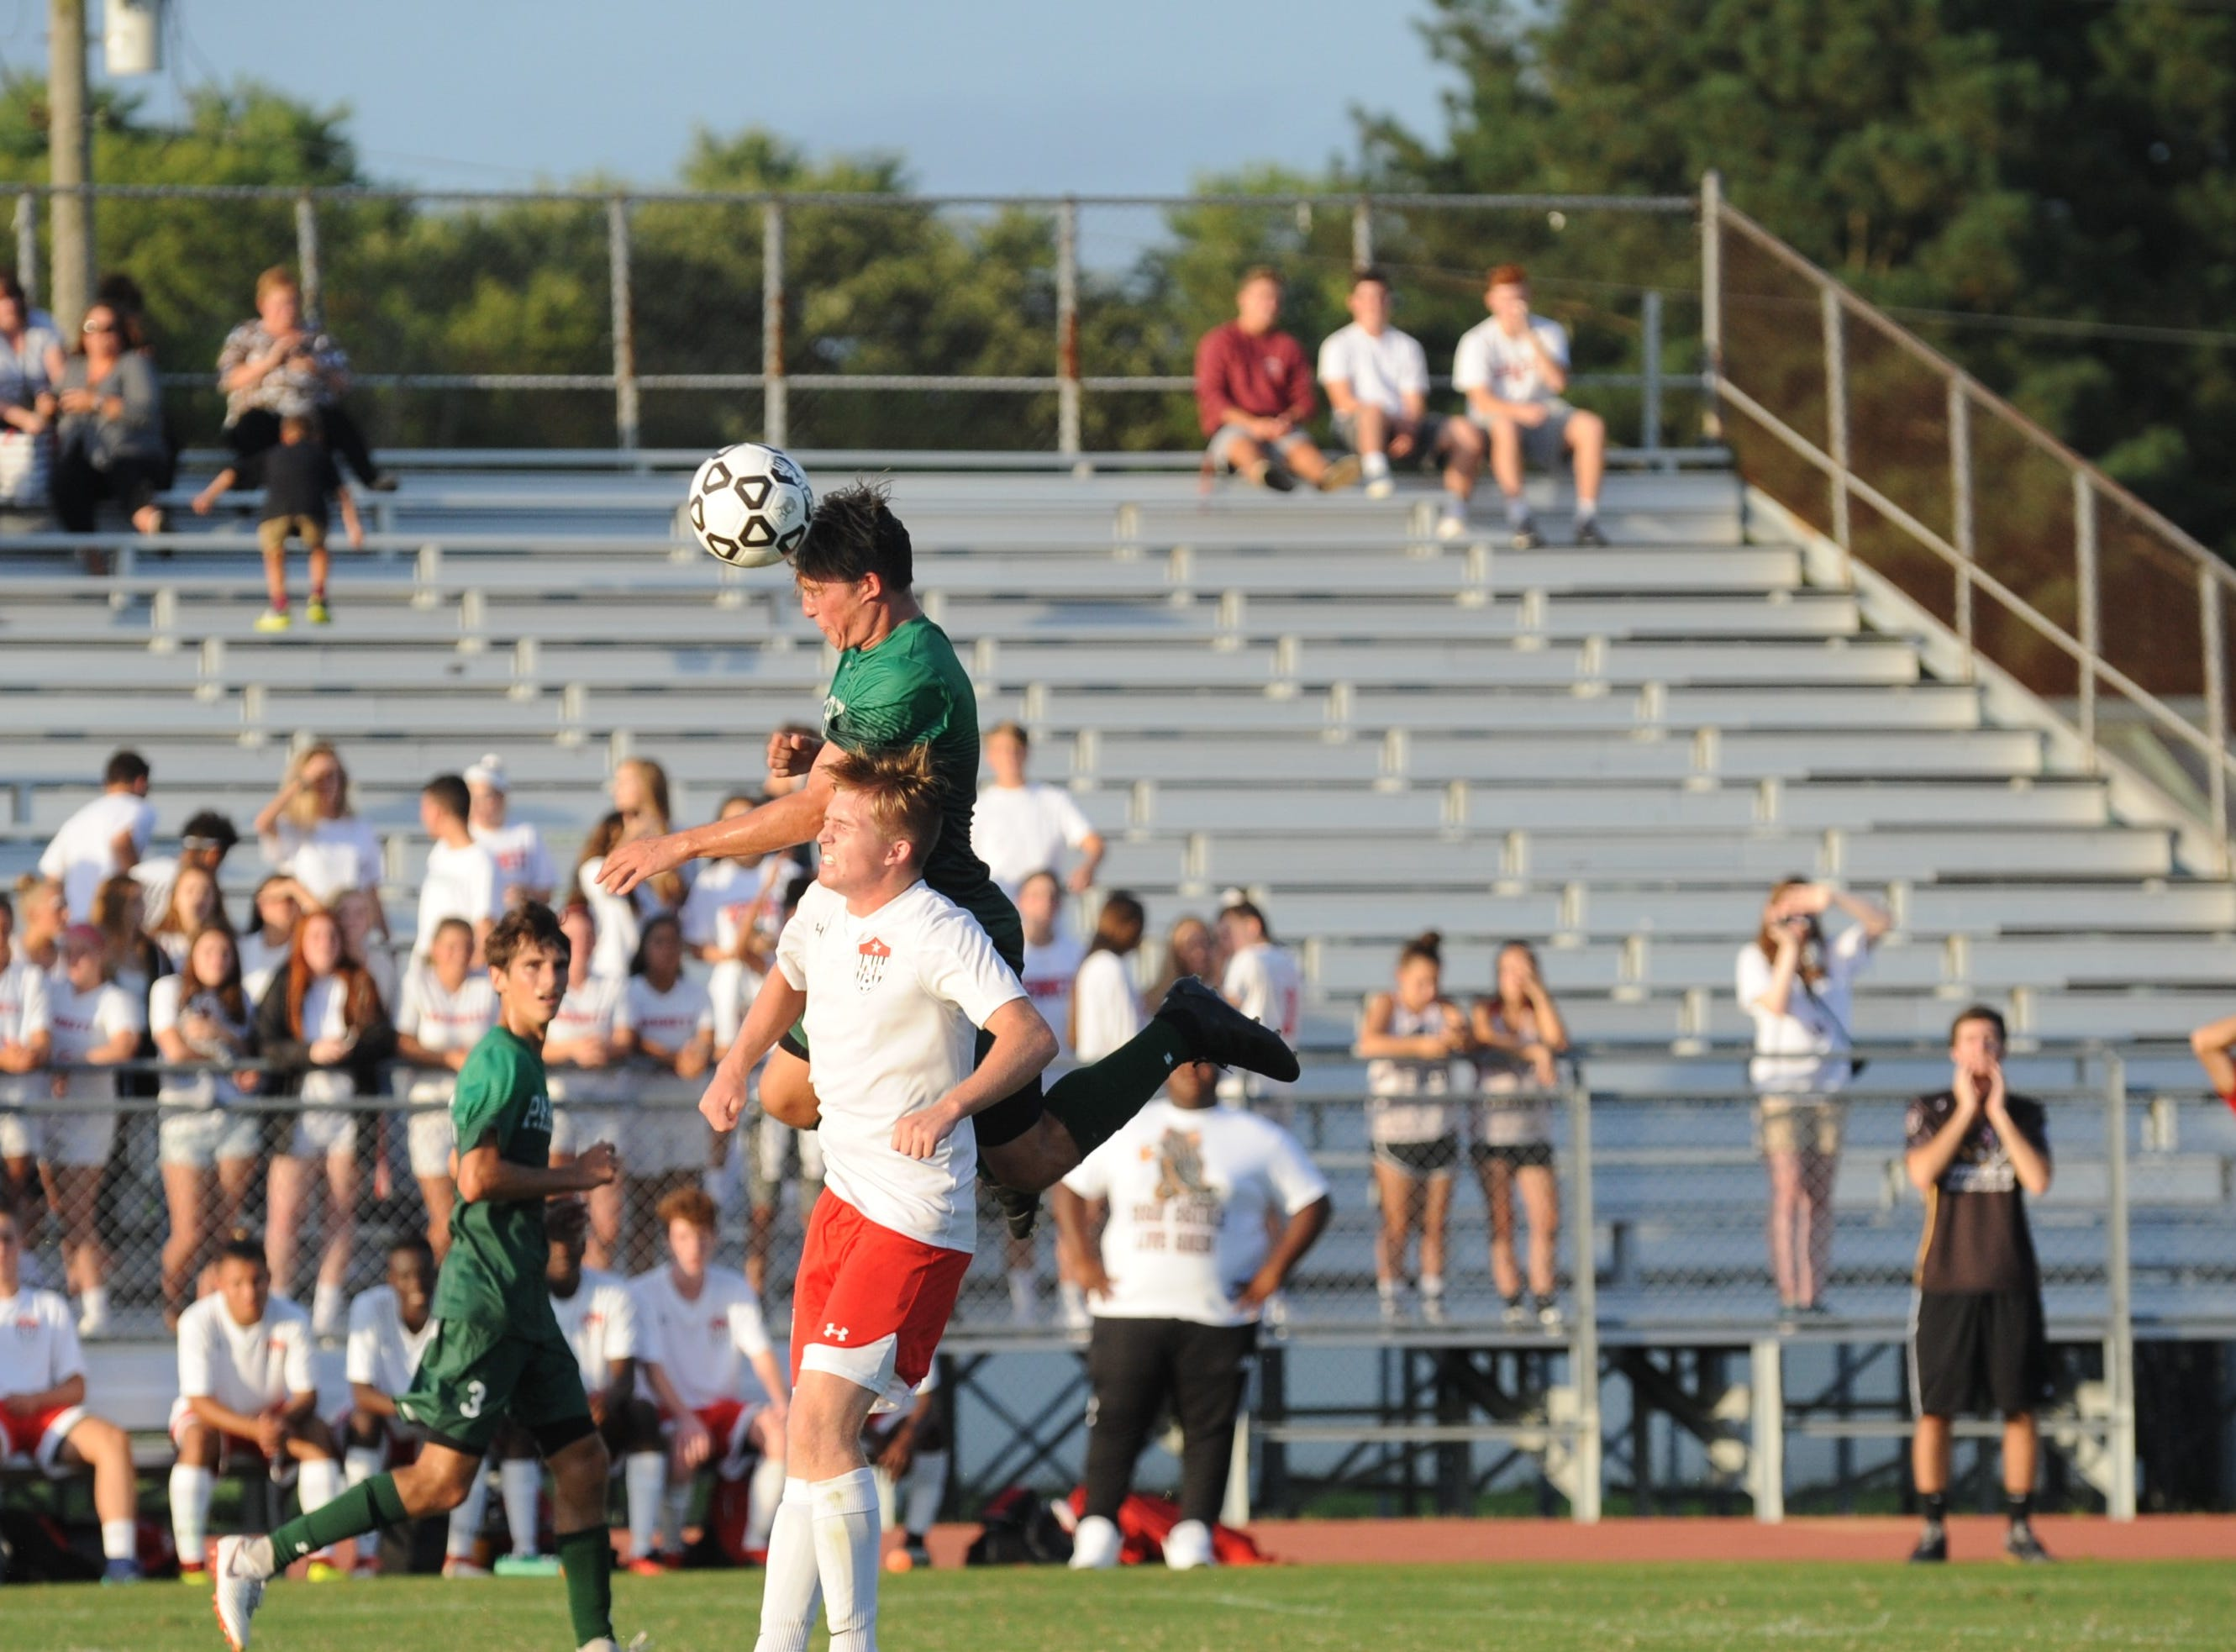 A Parkside player goes up for header during the Rams' boys soccer game against Bennett Monday night at County Stadium.